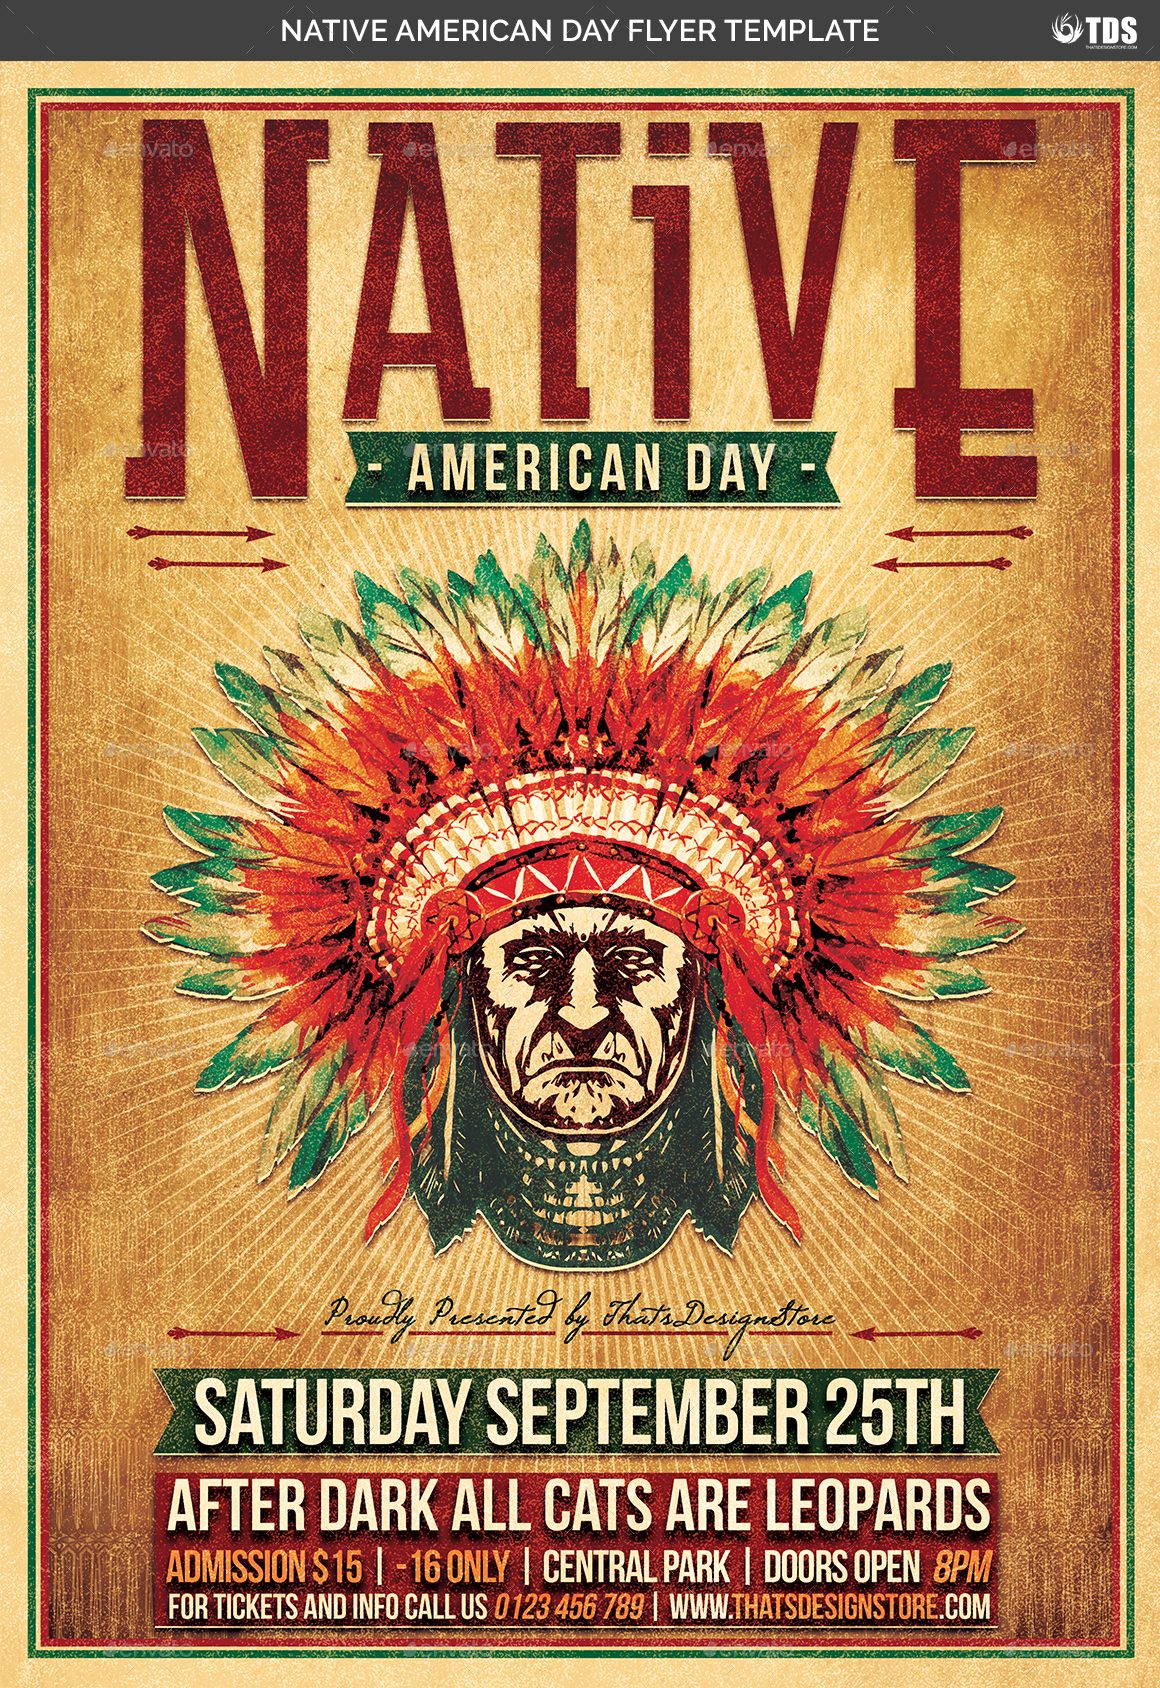 Native American Day Flyer Template By Lou606 Graphicriver